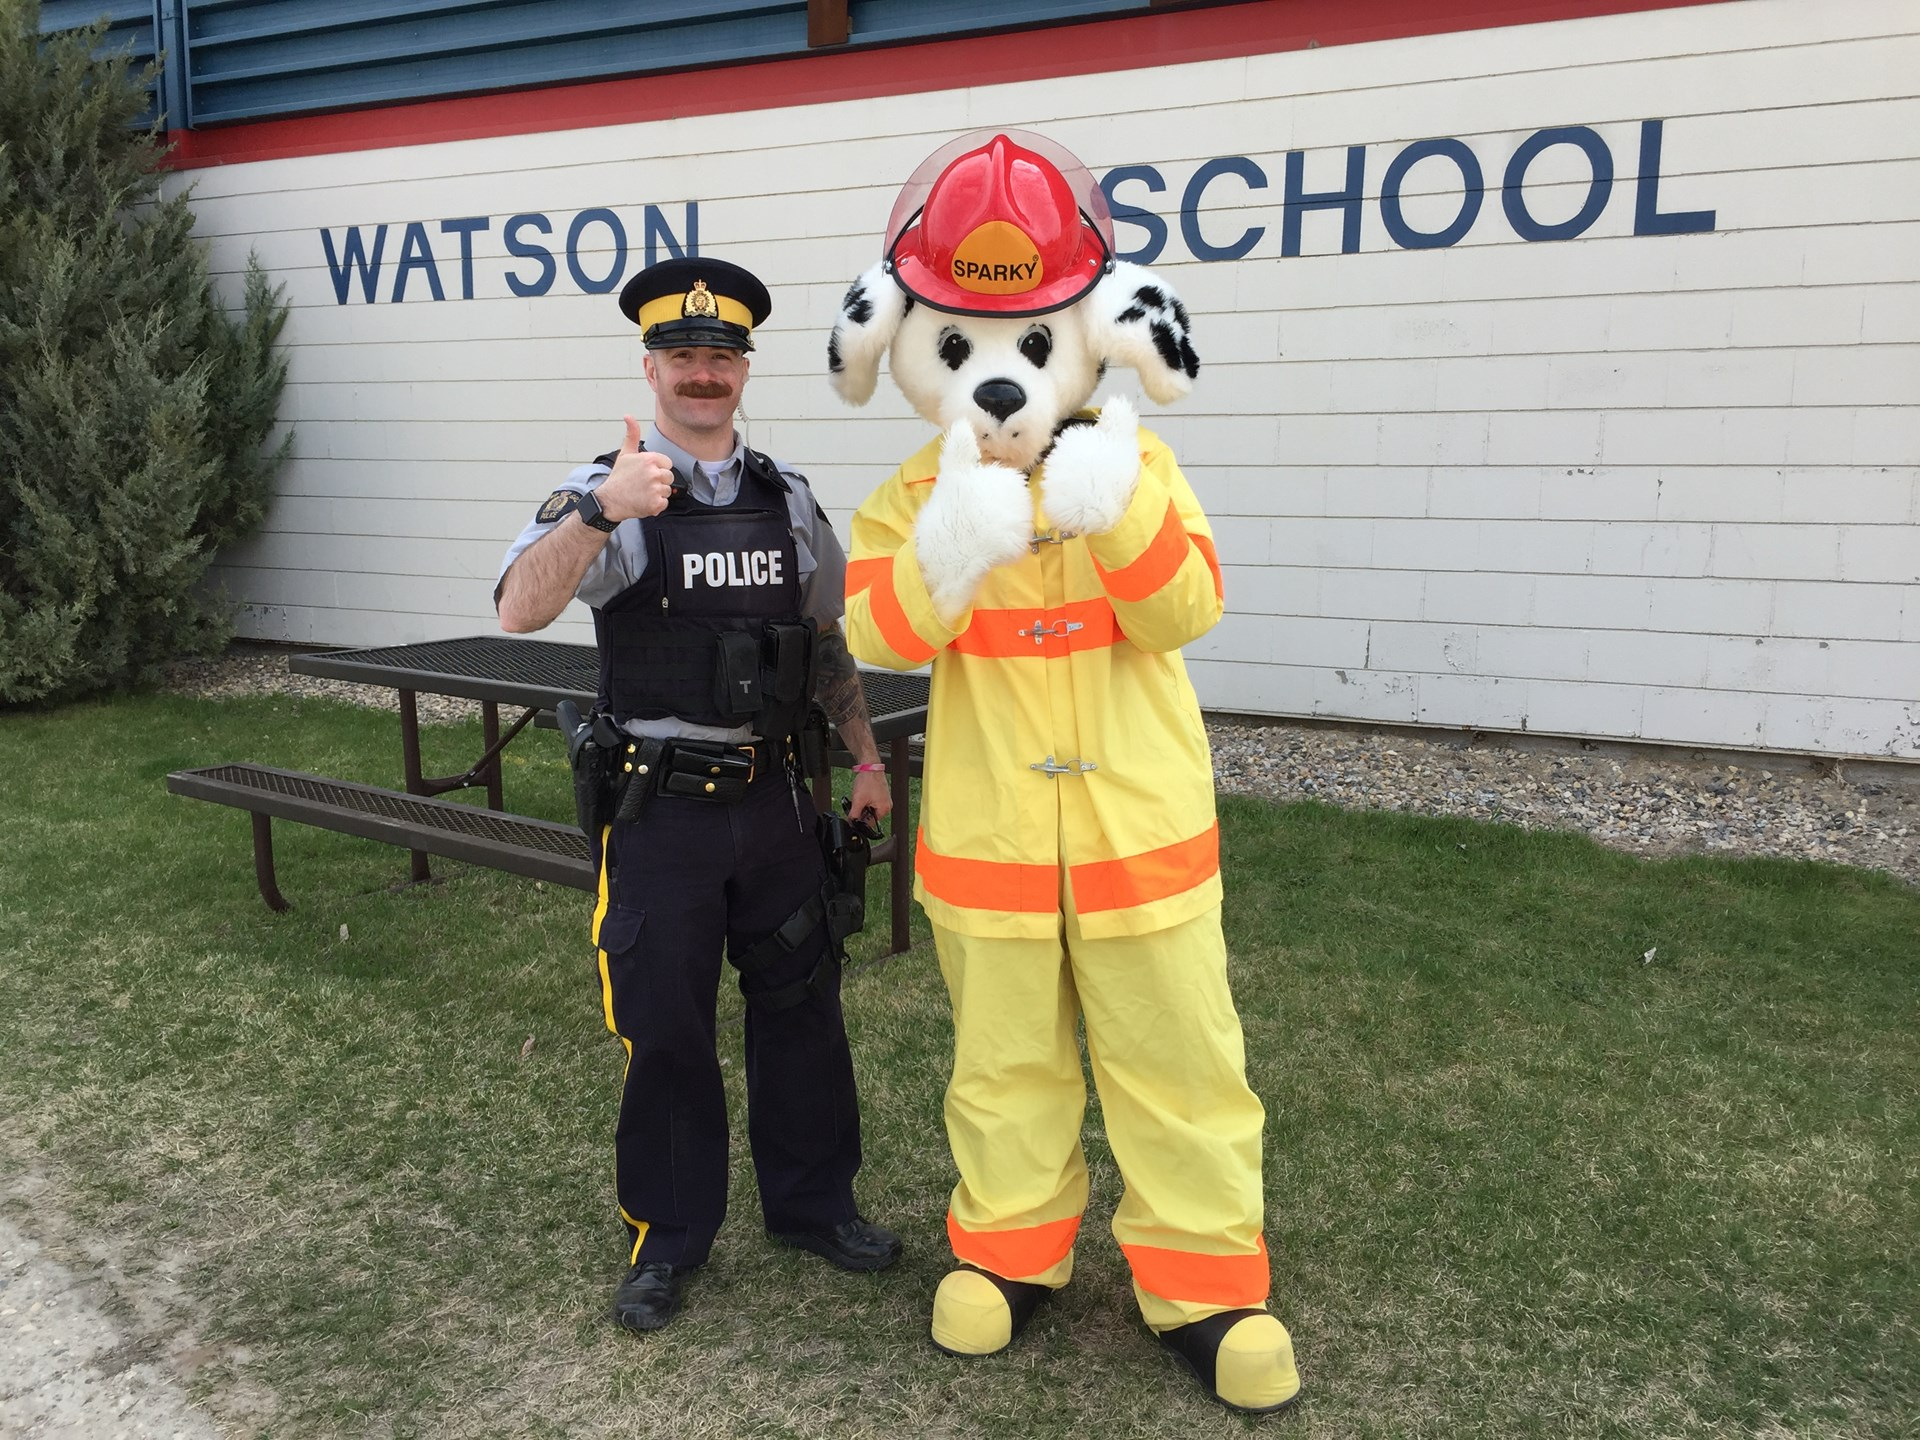 RCMP, Sparky the Fire Dog at Watson School.JPG